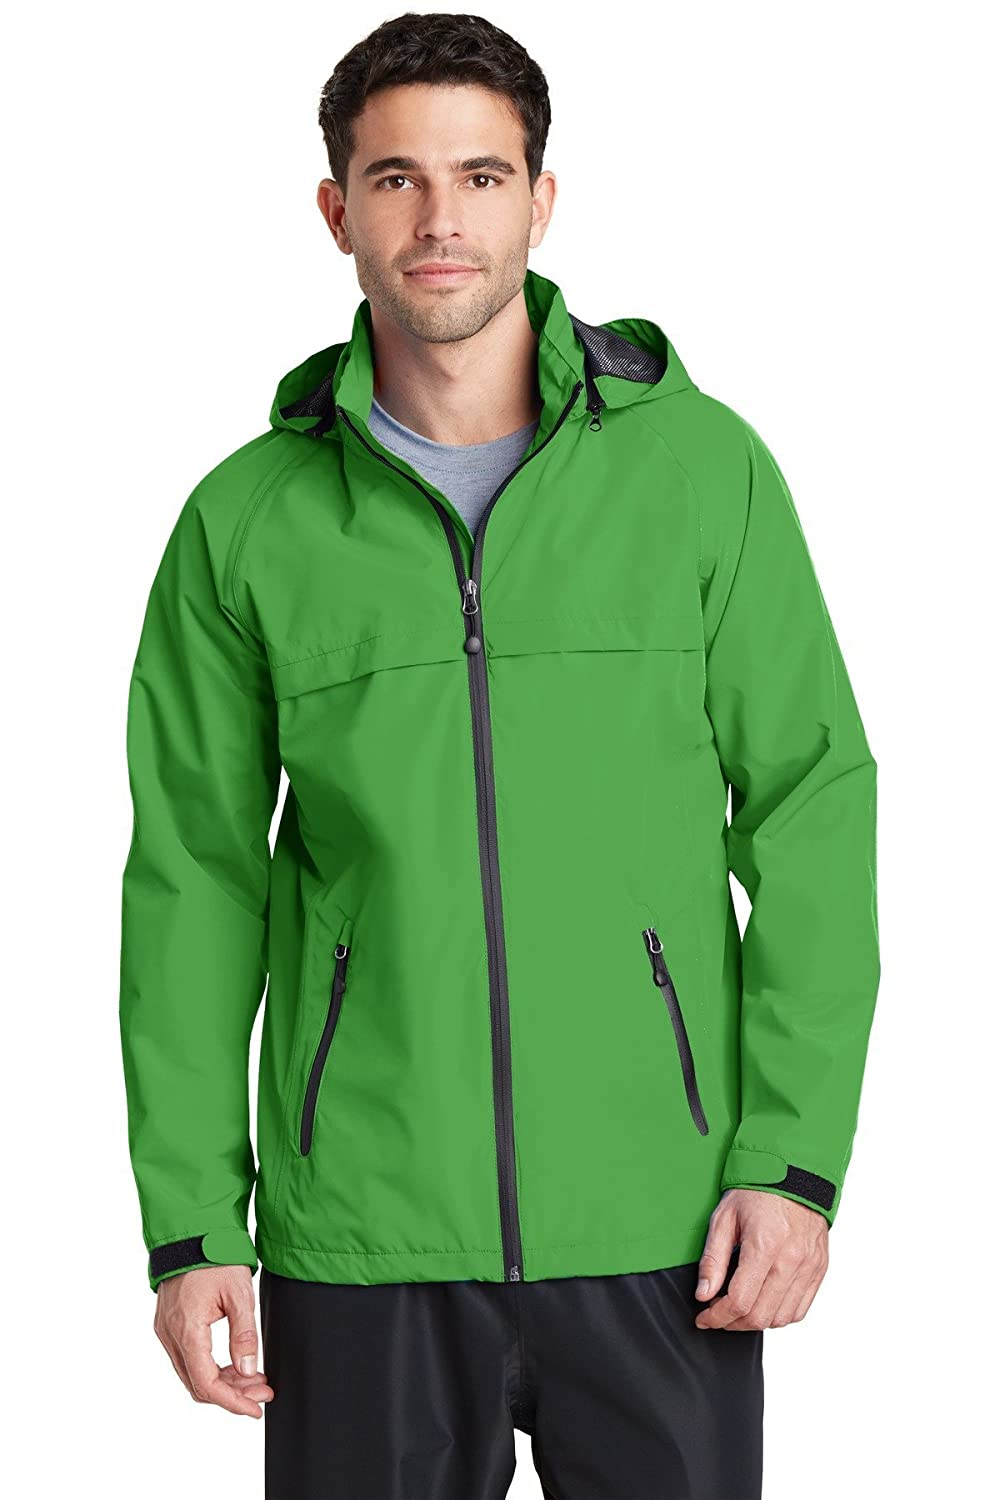 Port Authority Men's Torrent Waterproof Jacket J333